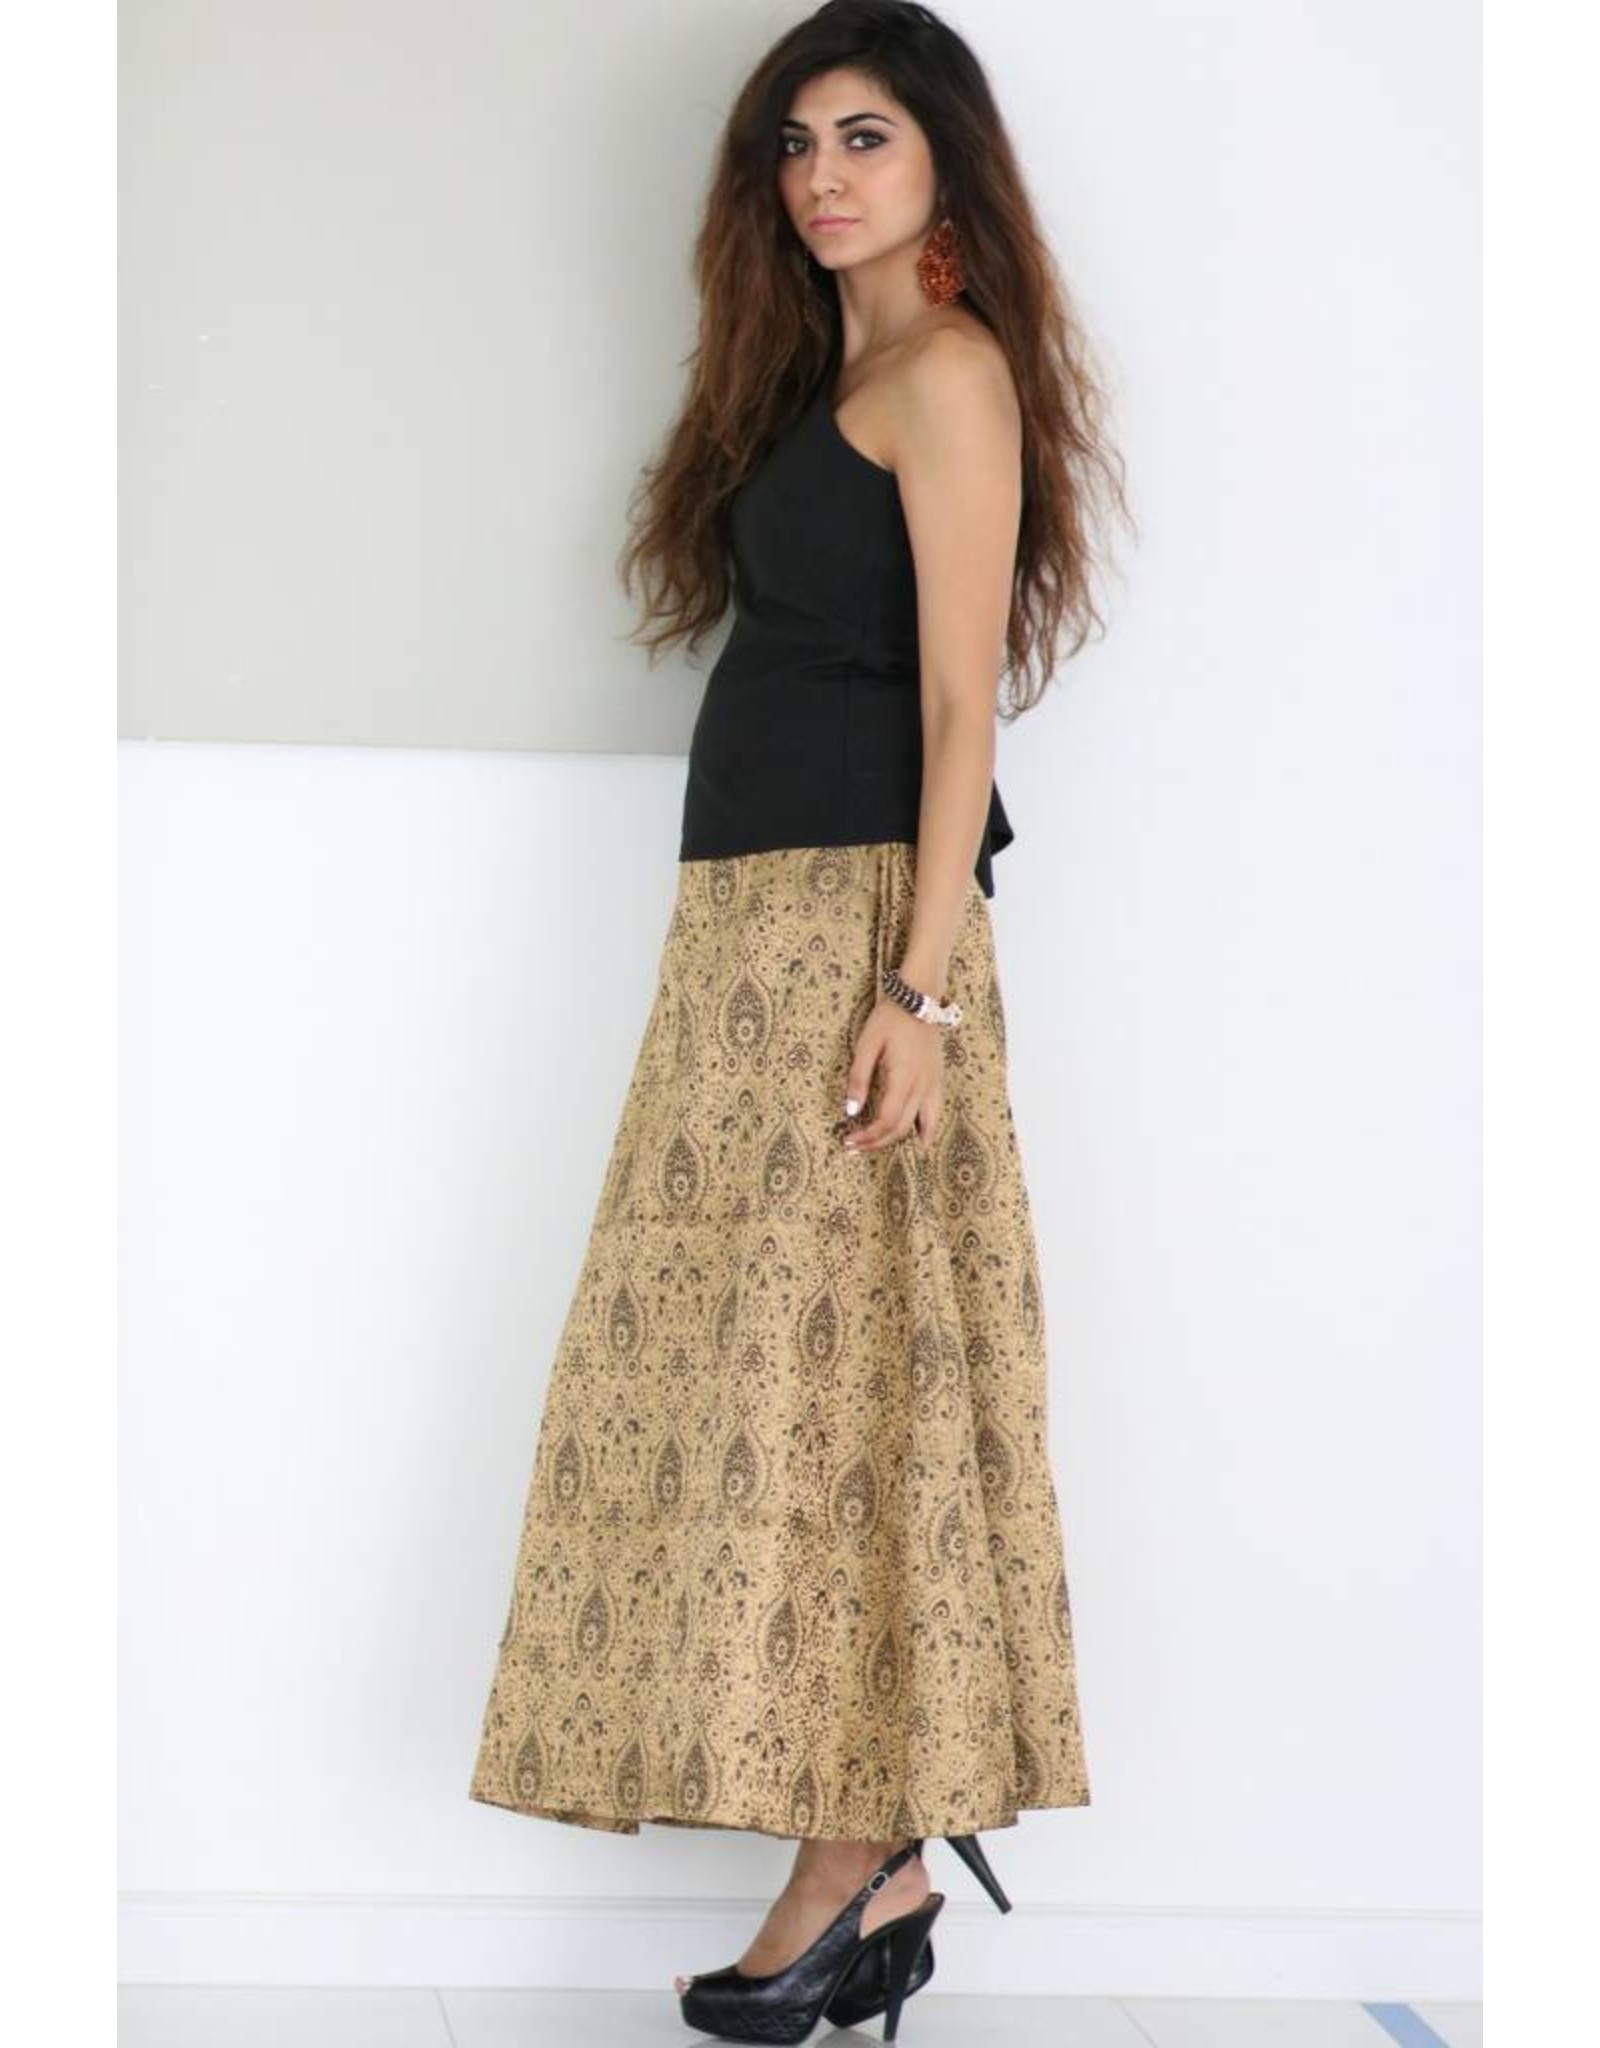 Preeti Chandra Long Skirt